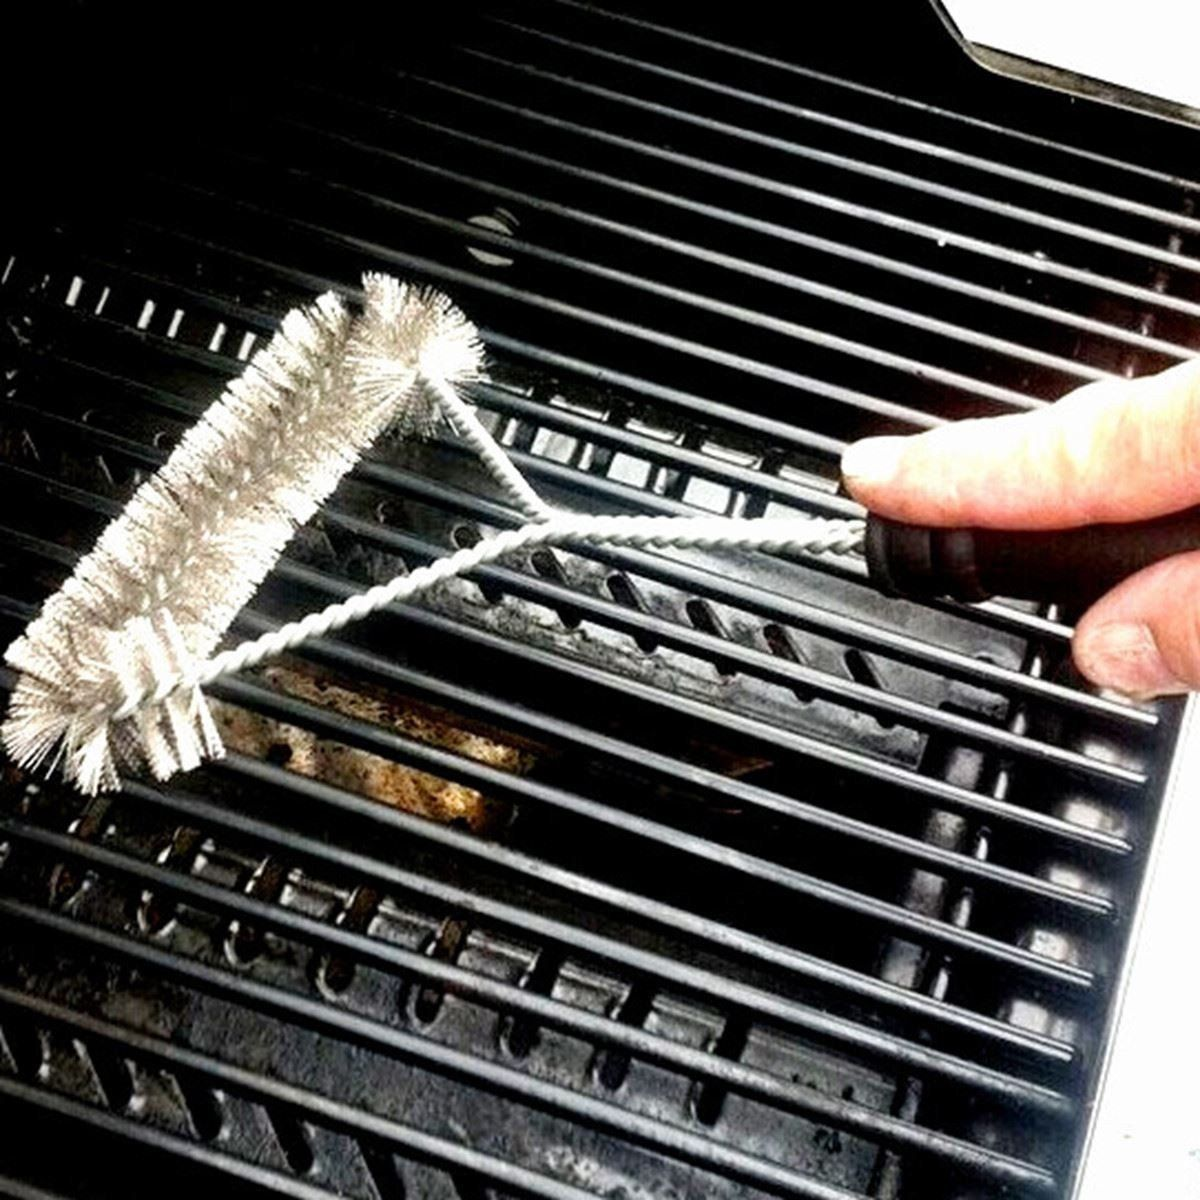 Do you know how to clean bbq grill grates with vinegar